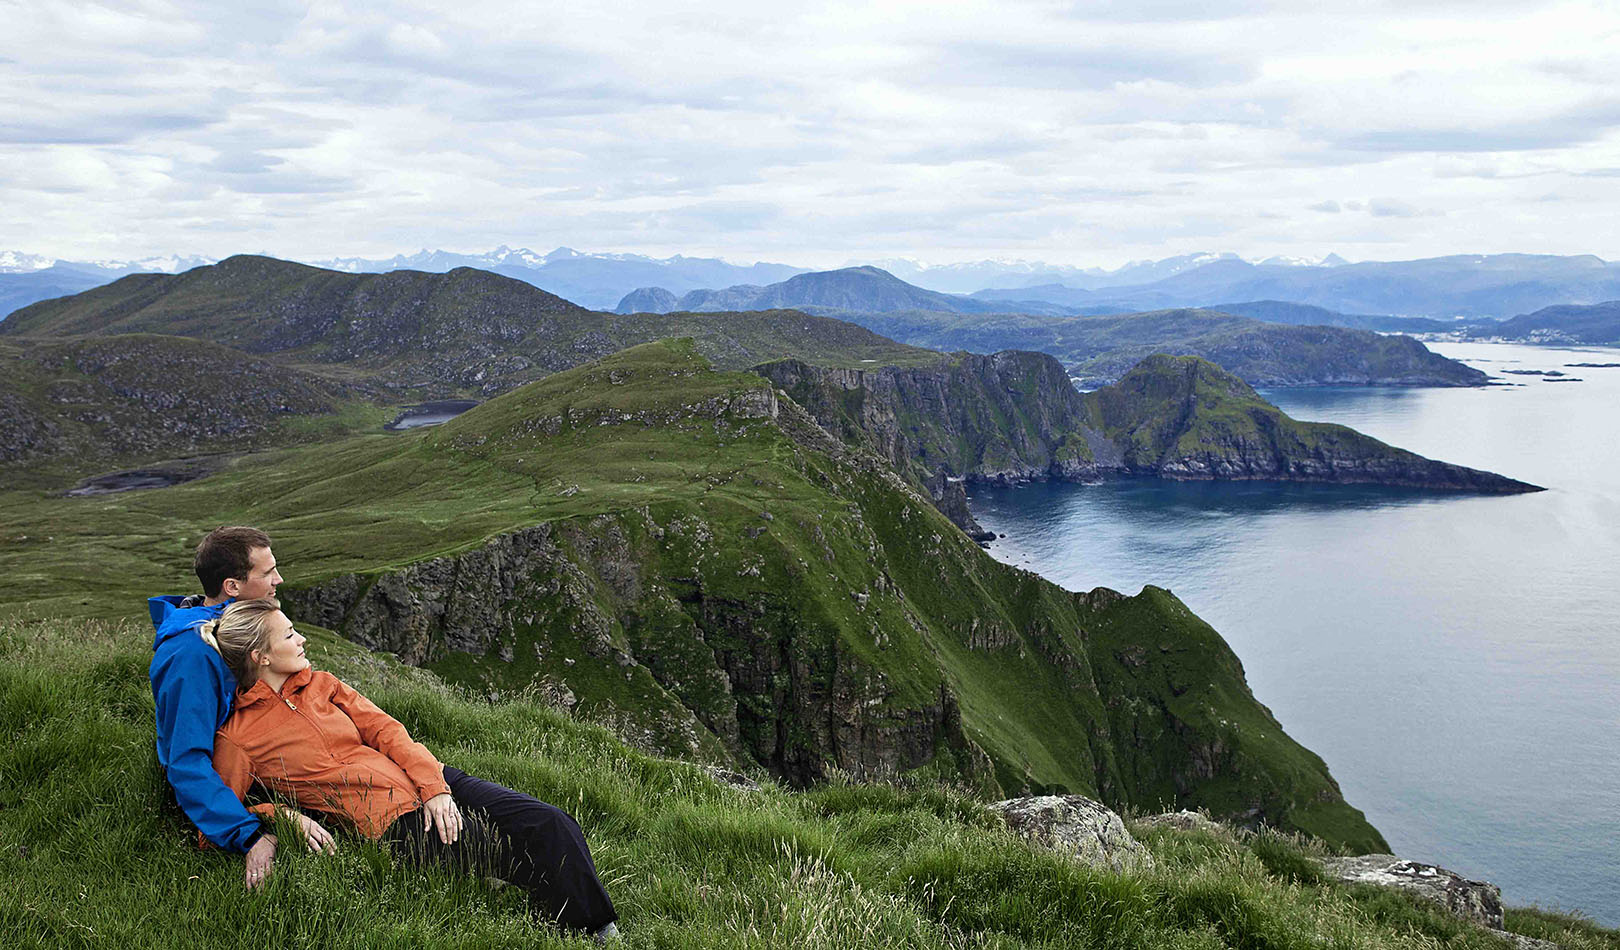 Couple enjoying the view from a mountain on the Island of Runde, Sunnmøre.